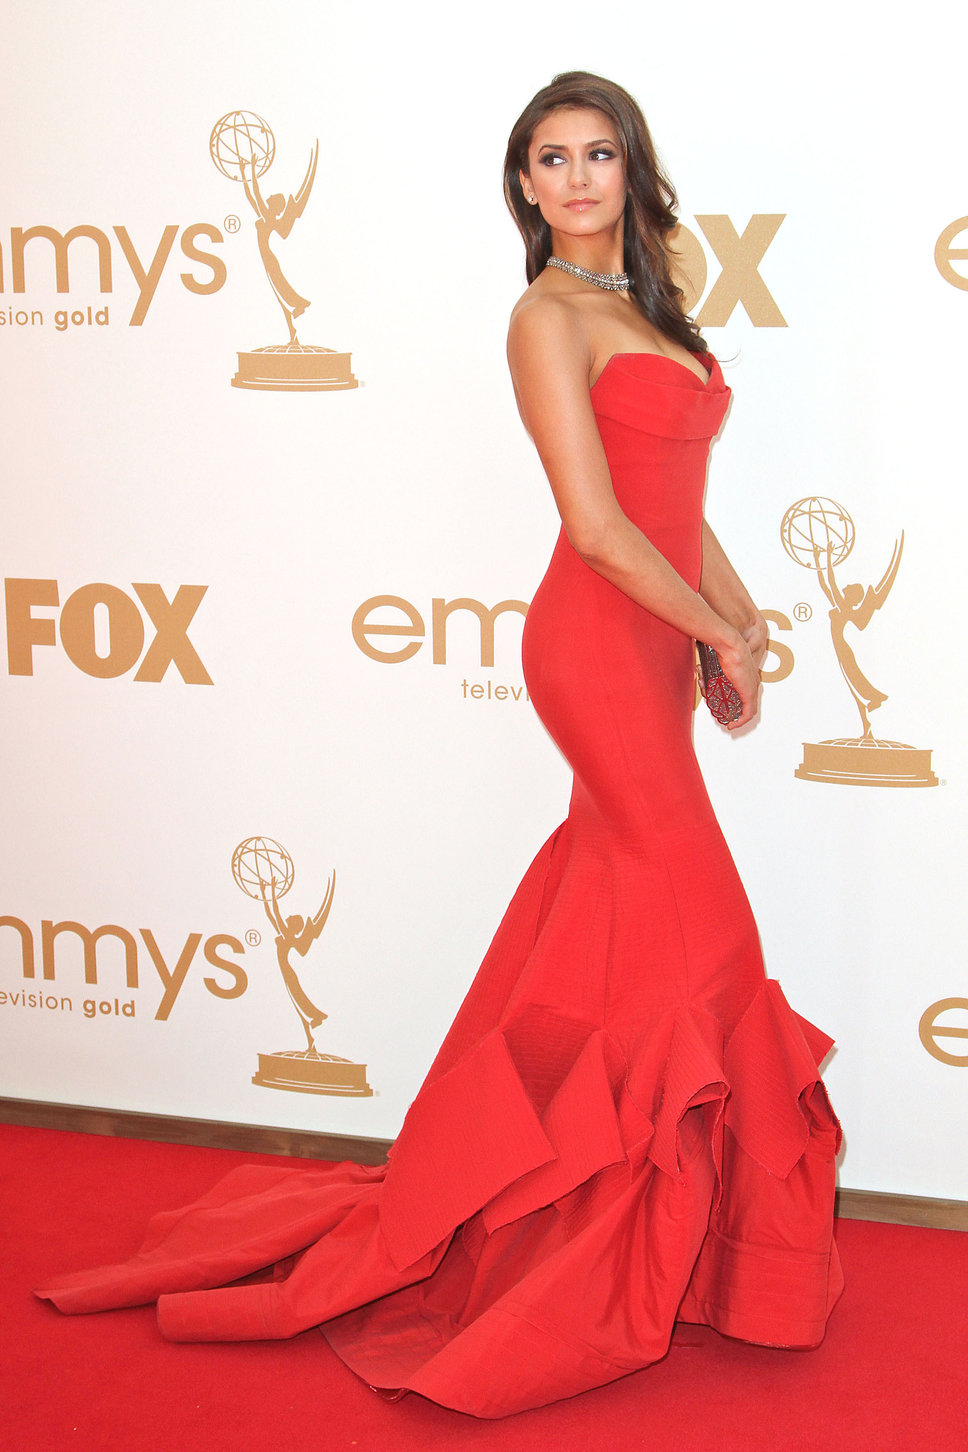 New Arrival Red Carpet Dresses Red Satin Ruched Mermaid